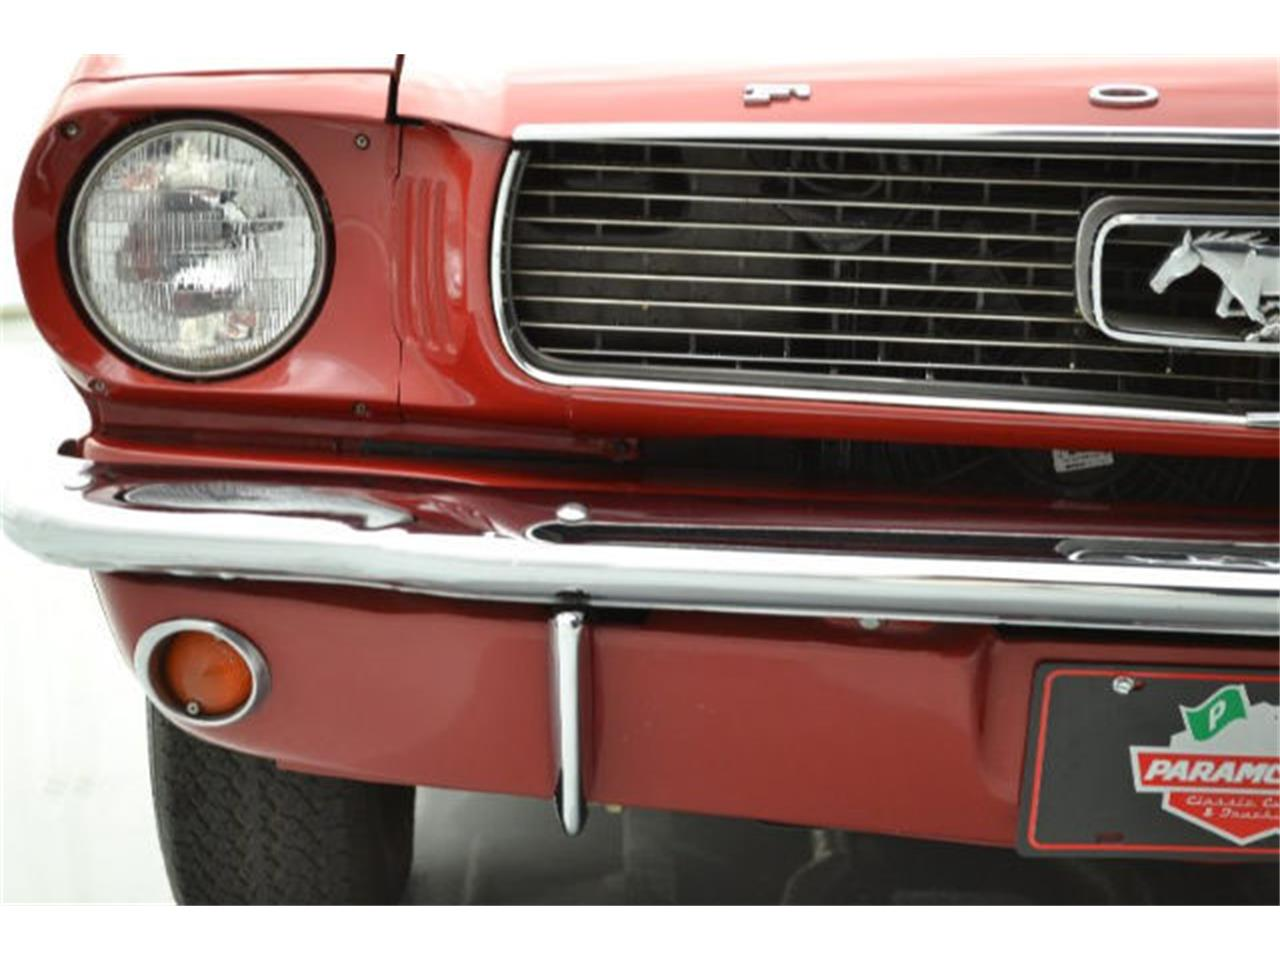 Large Picture of '66 Ford Mustang located in Hickory North Carolina - $39,995.00 - JBCM